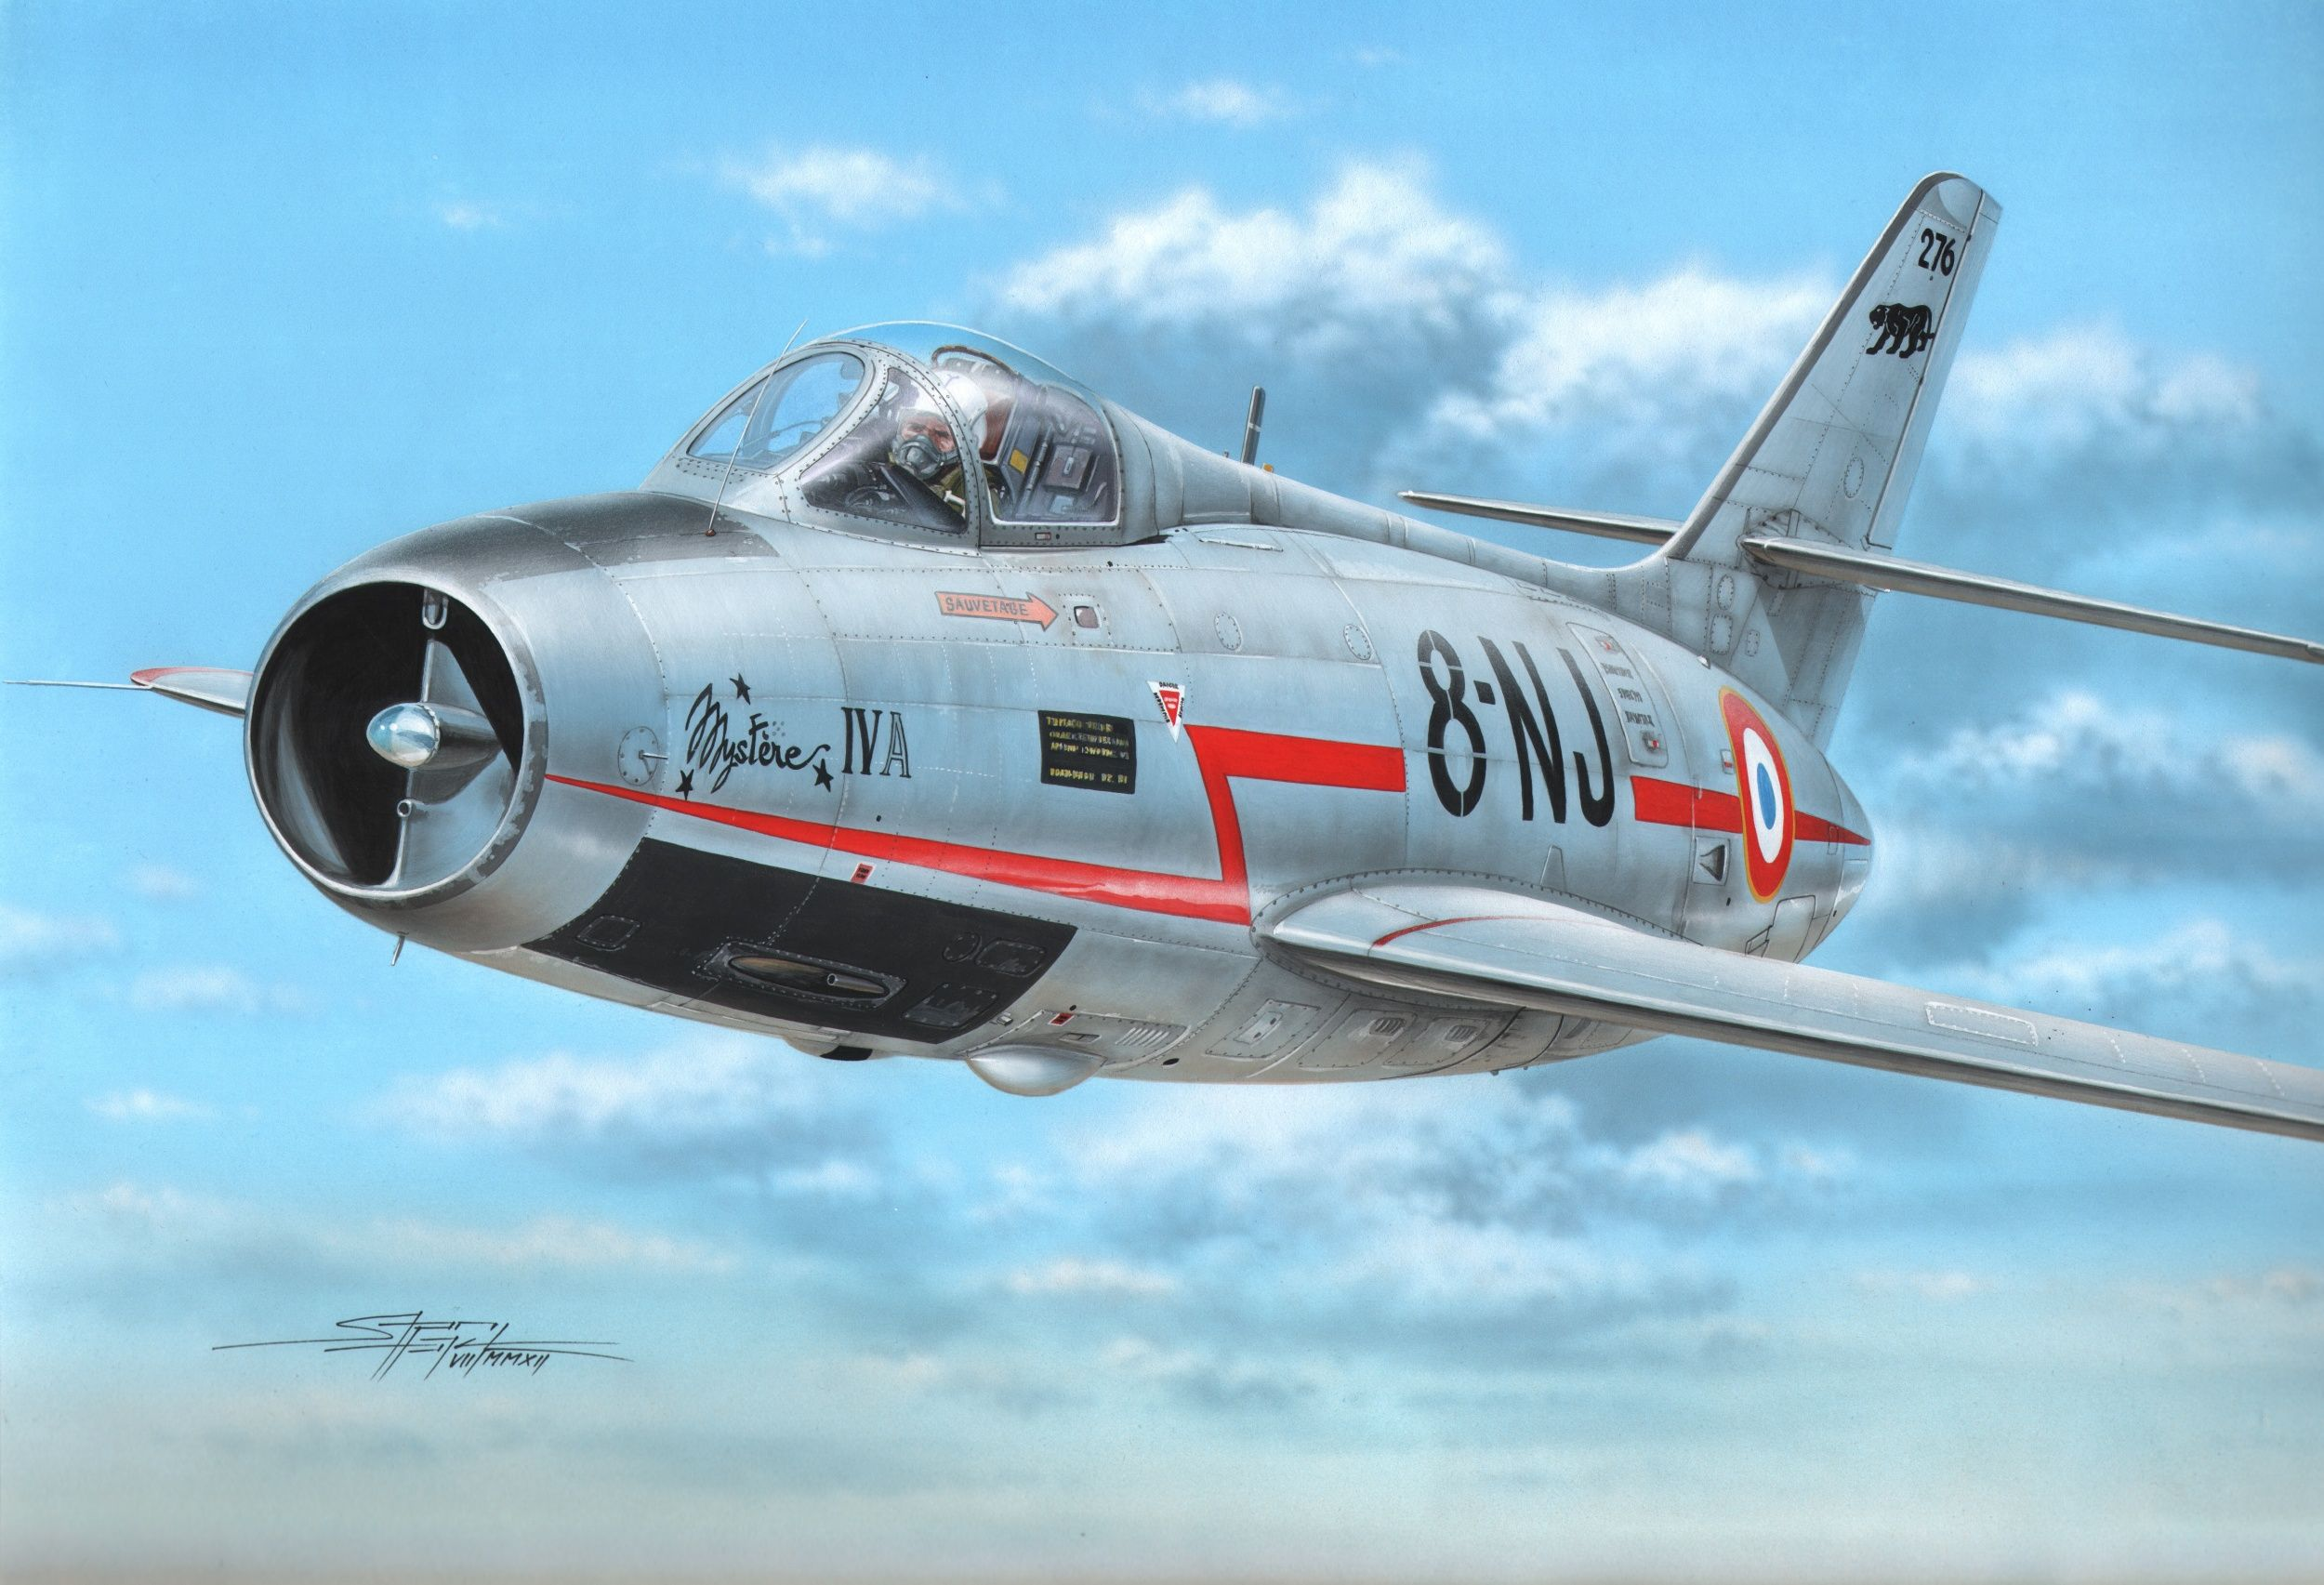 The Dassault Md 454 Mystere Iv Was A 1950s French Fighter Bomber Aircraft The First Transonic Aircraft To Enter Service Pilots Aviation Aircraft Art Aircraft